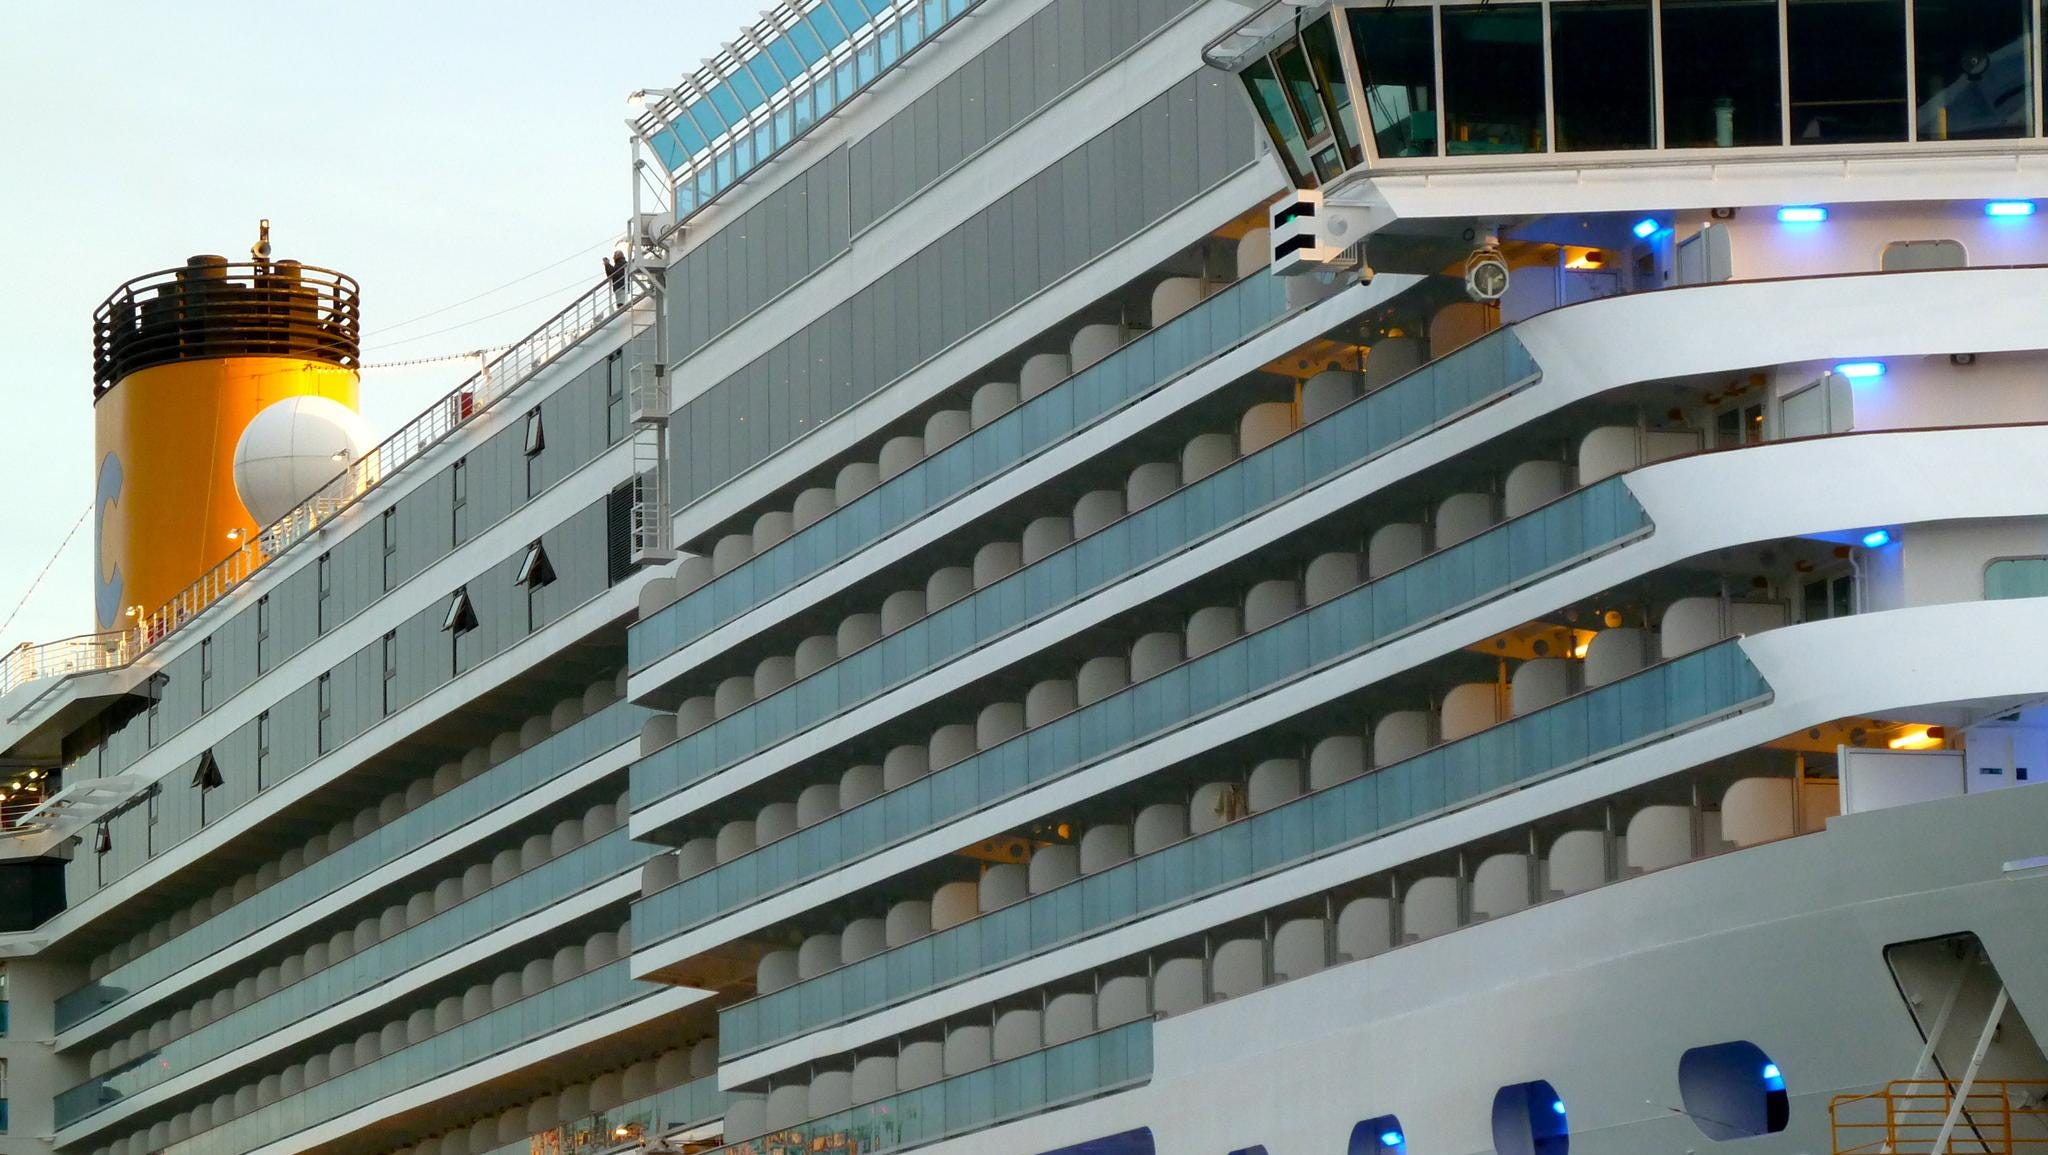 Costa Deliziosa is a variant of the Carnival Cruise Line common platform Vista series of ships with similar hull dimensions, architecture and mechanics to six Holland America vessels, two Cunarders, one P&O ship and the Costa Luminosa.